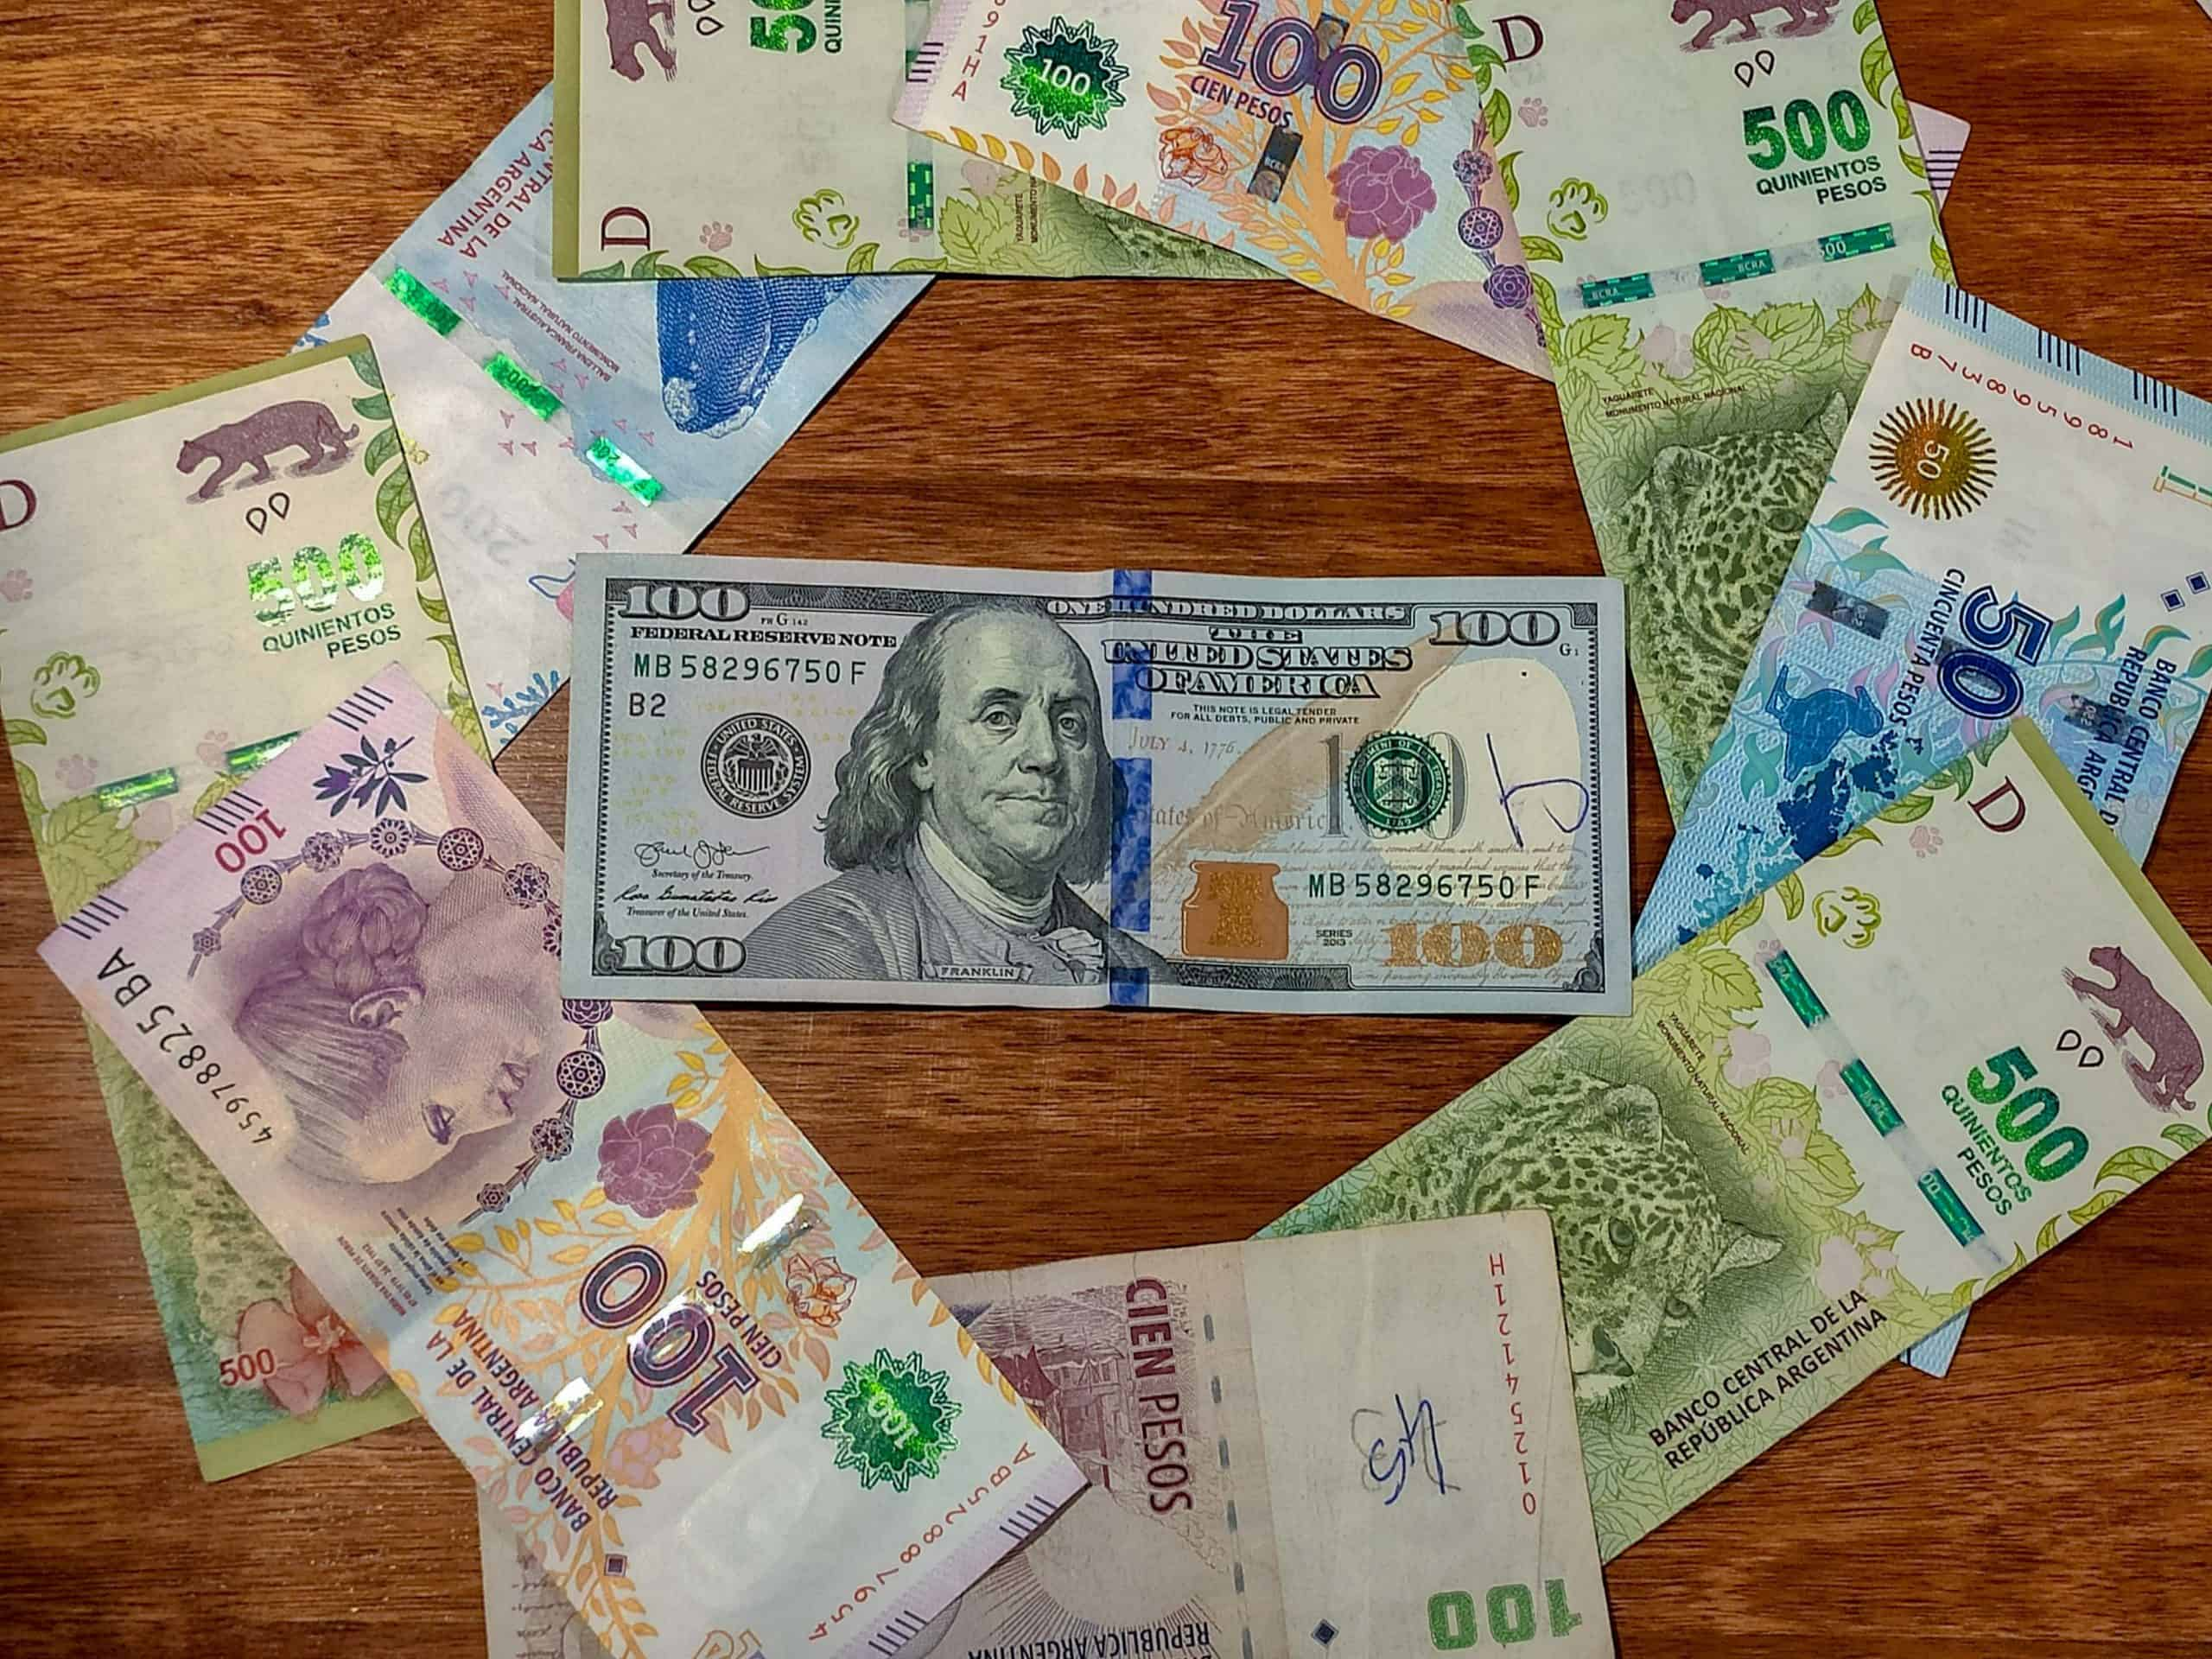 Dolar Blue Price is a the other price of the dolar